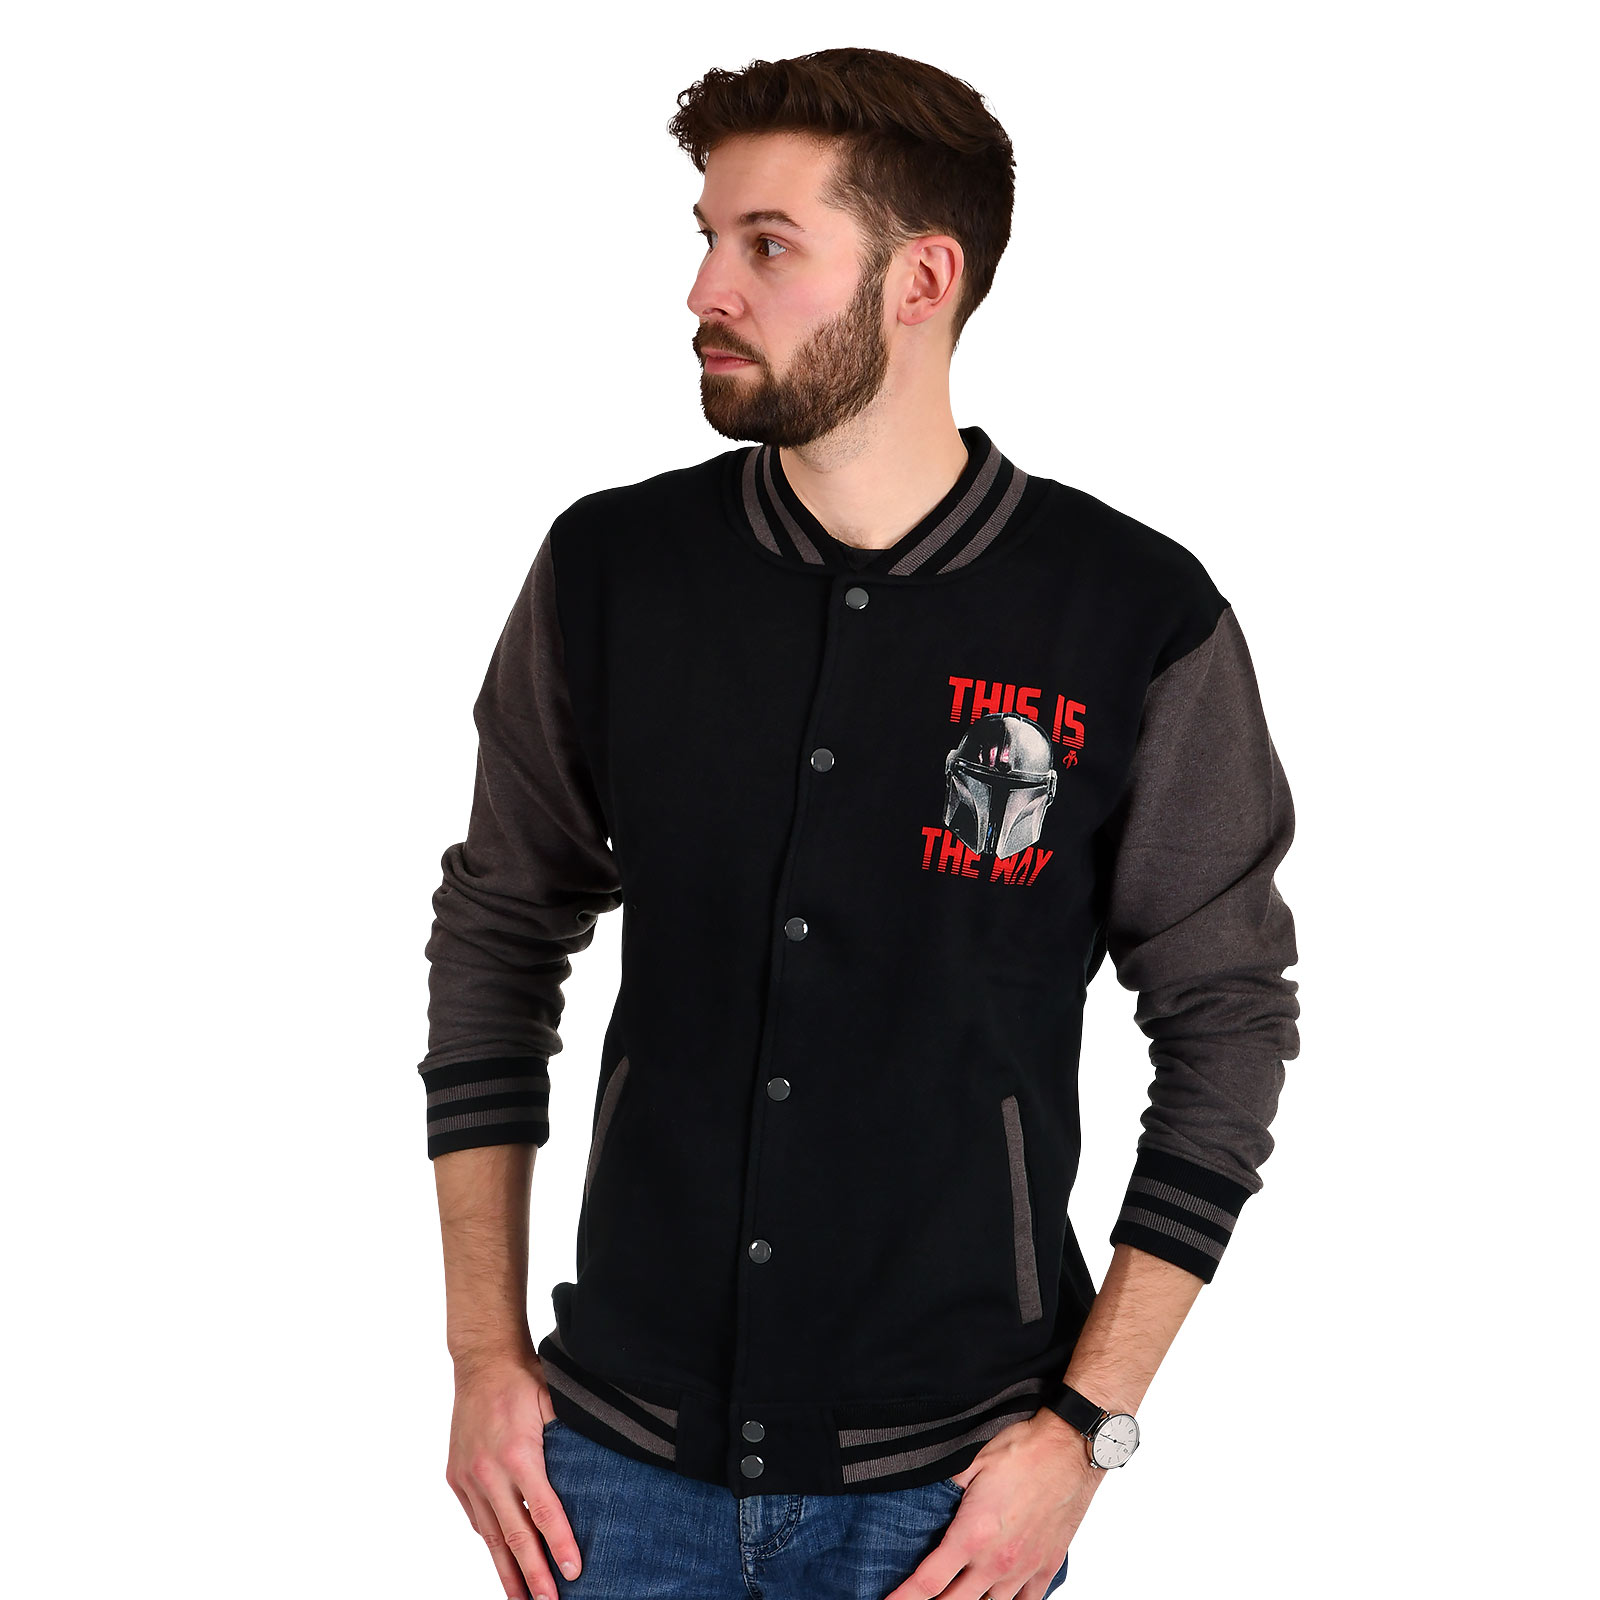 The Mandalorian This Is the Way College Jacke - Star Wars